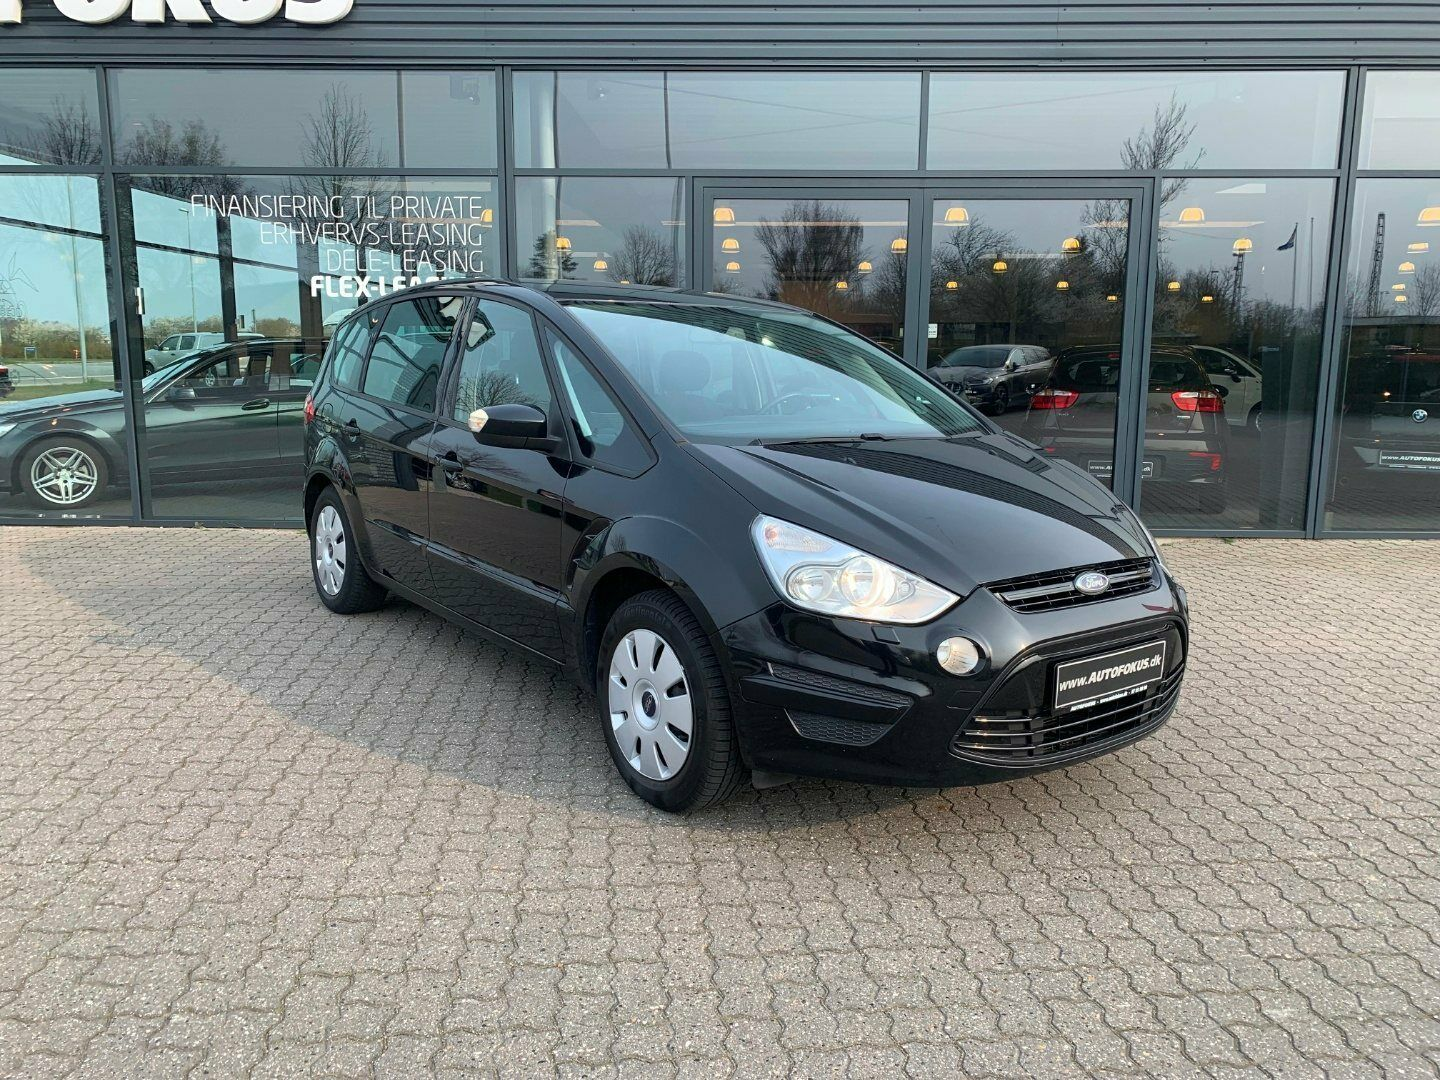 Ford S-MAX 2,0 Trend 7prs 5d - 139.900 kr.